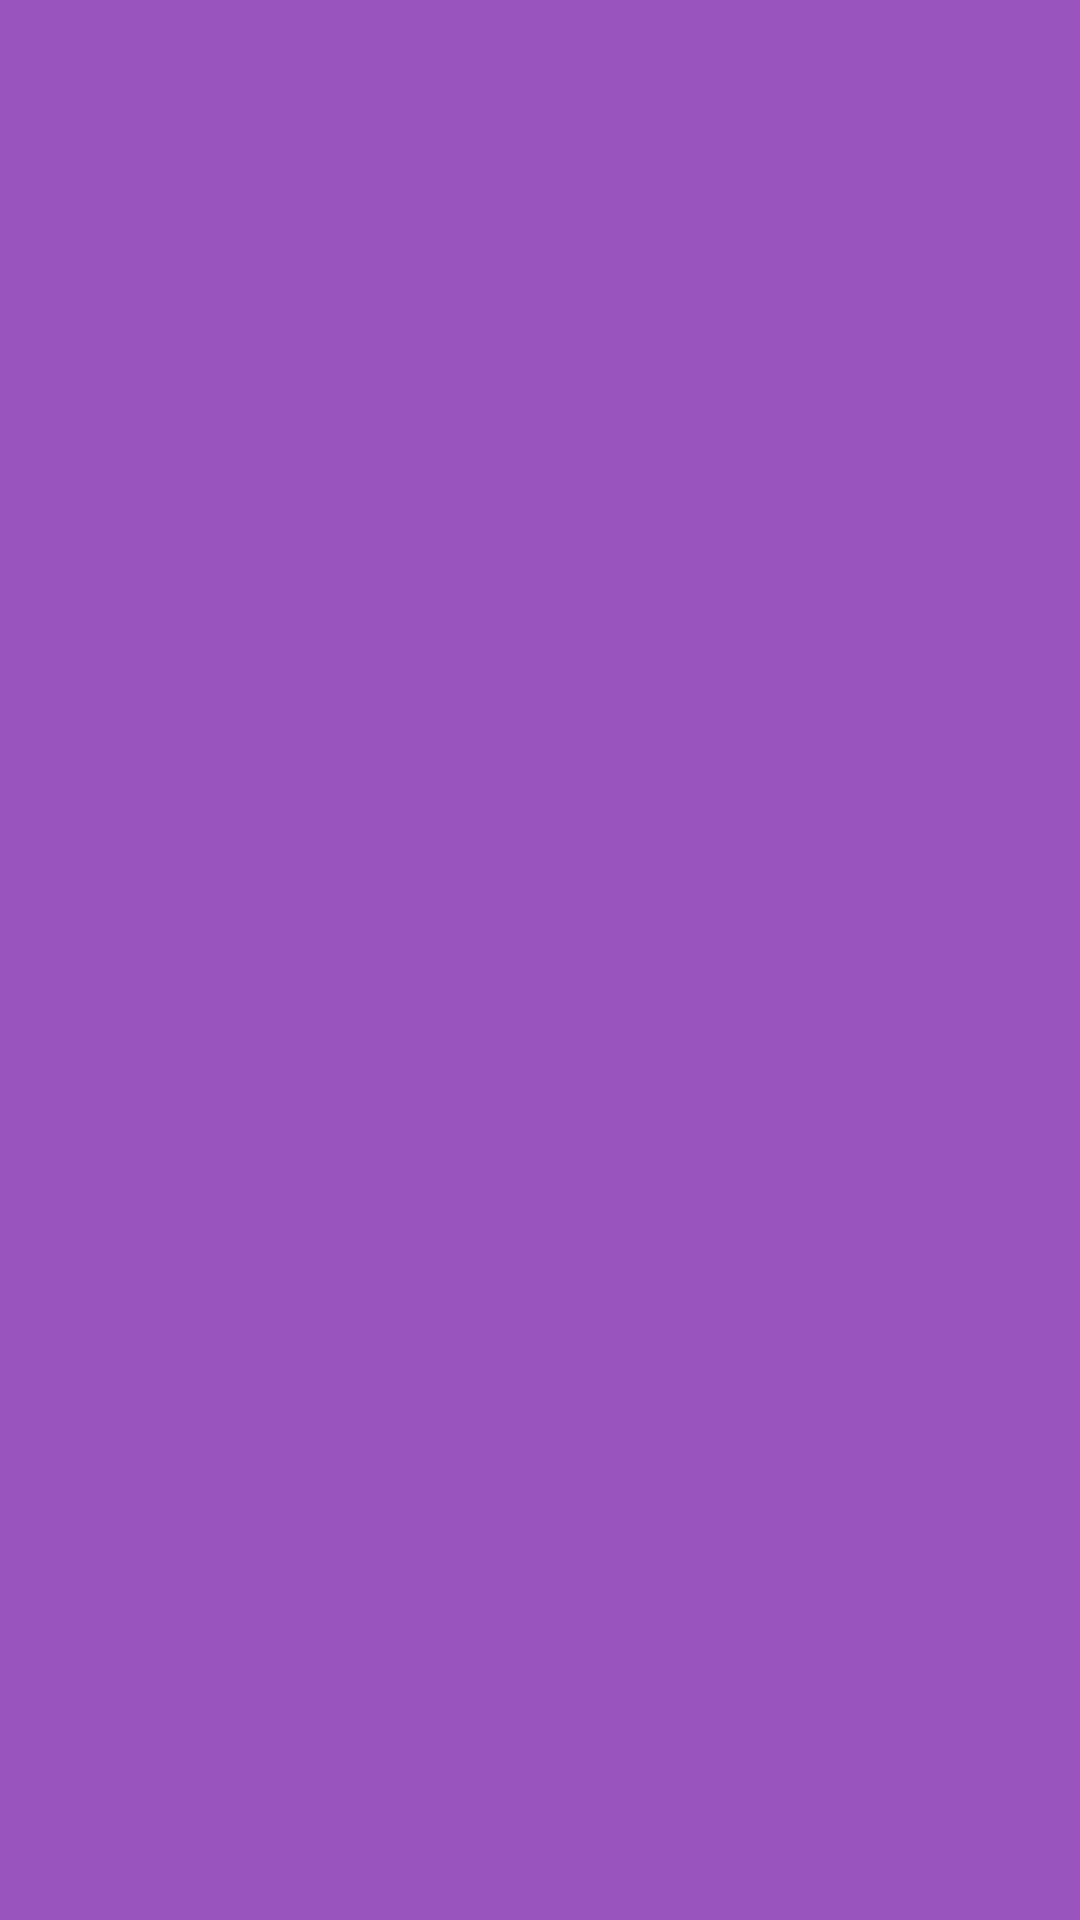 1080x1920 Deep Lilac Solid Color Background